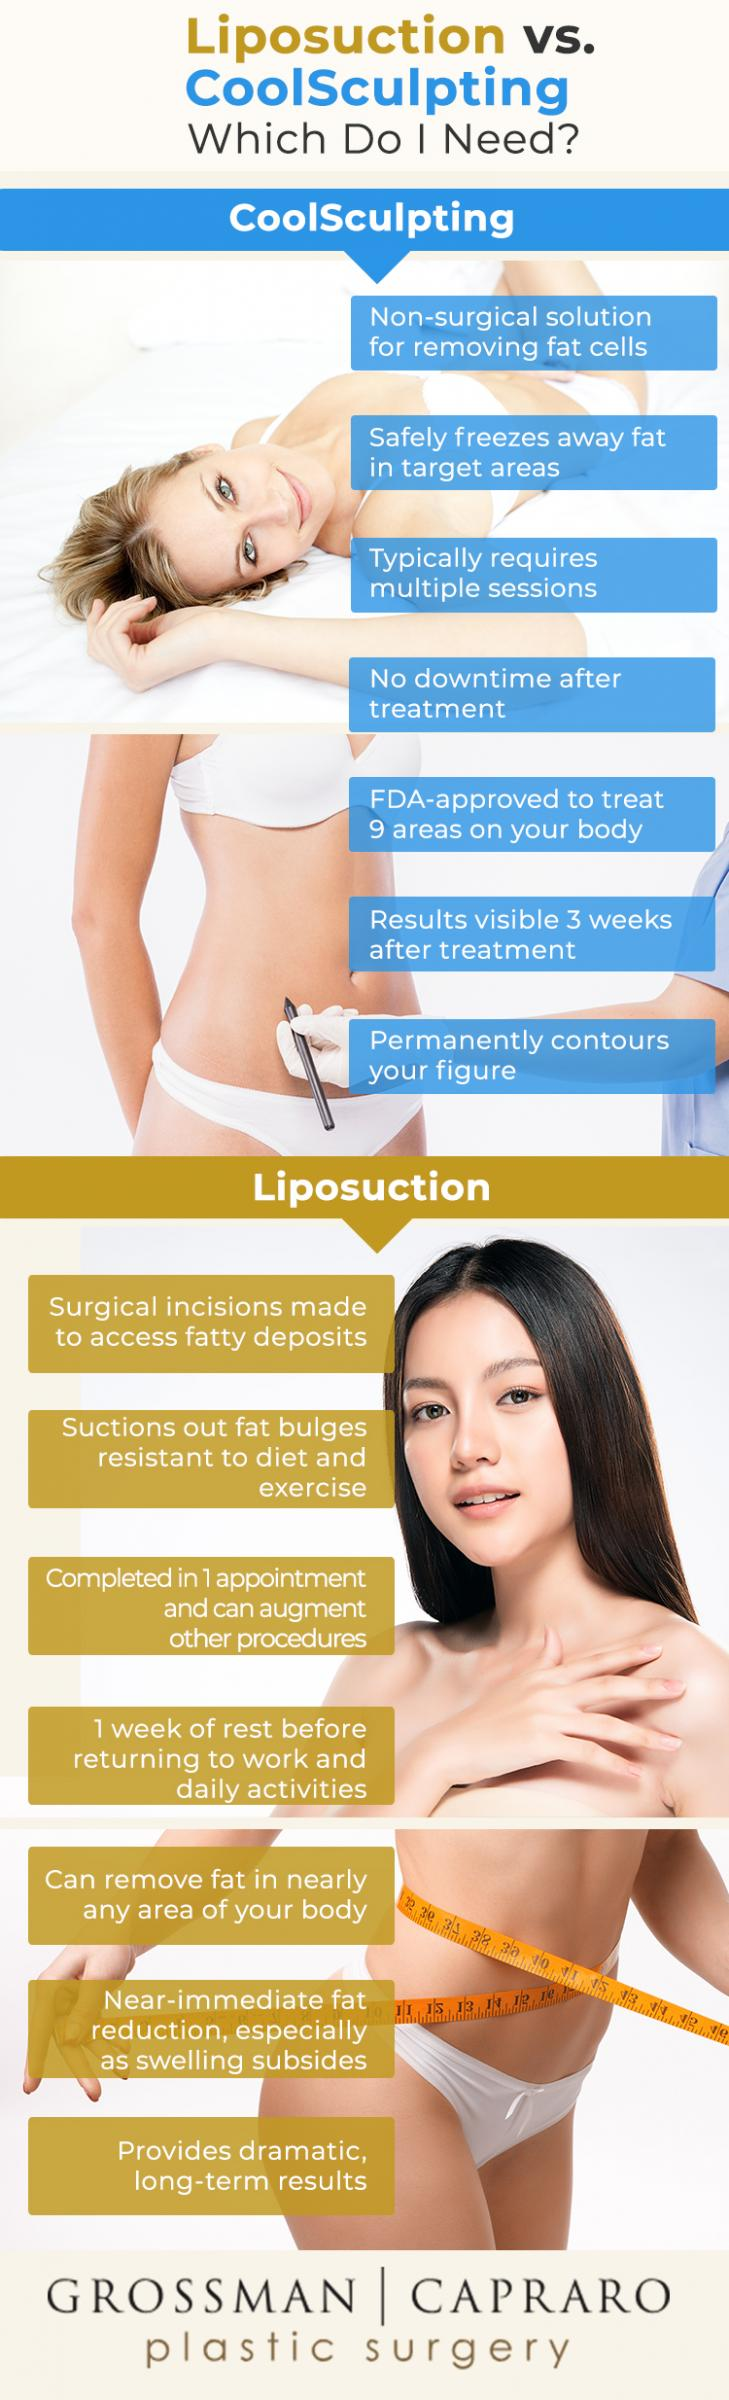 Liposuction Versus CoolSculping Infographic